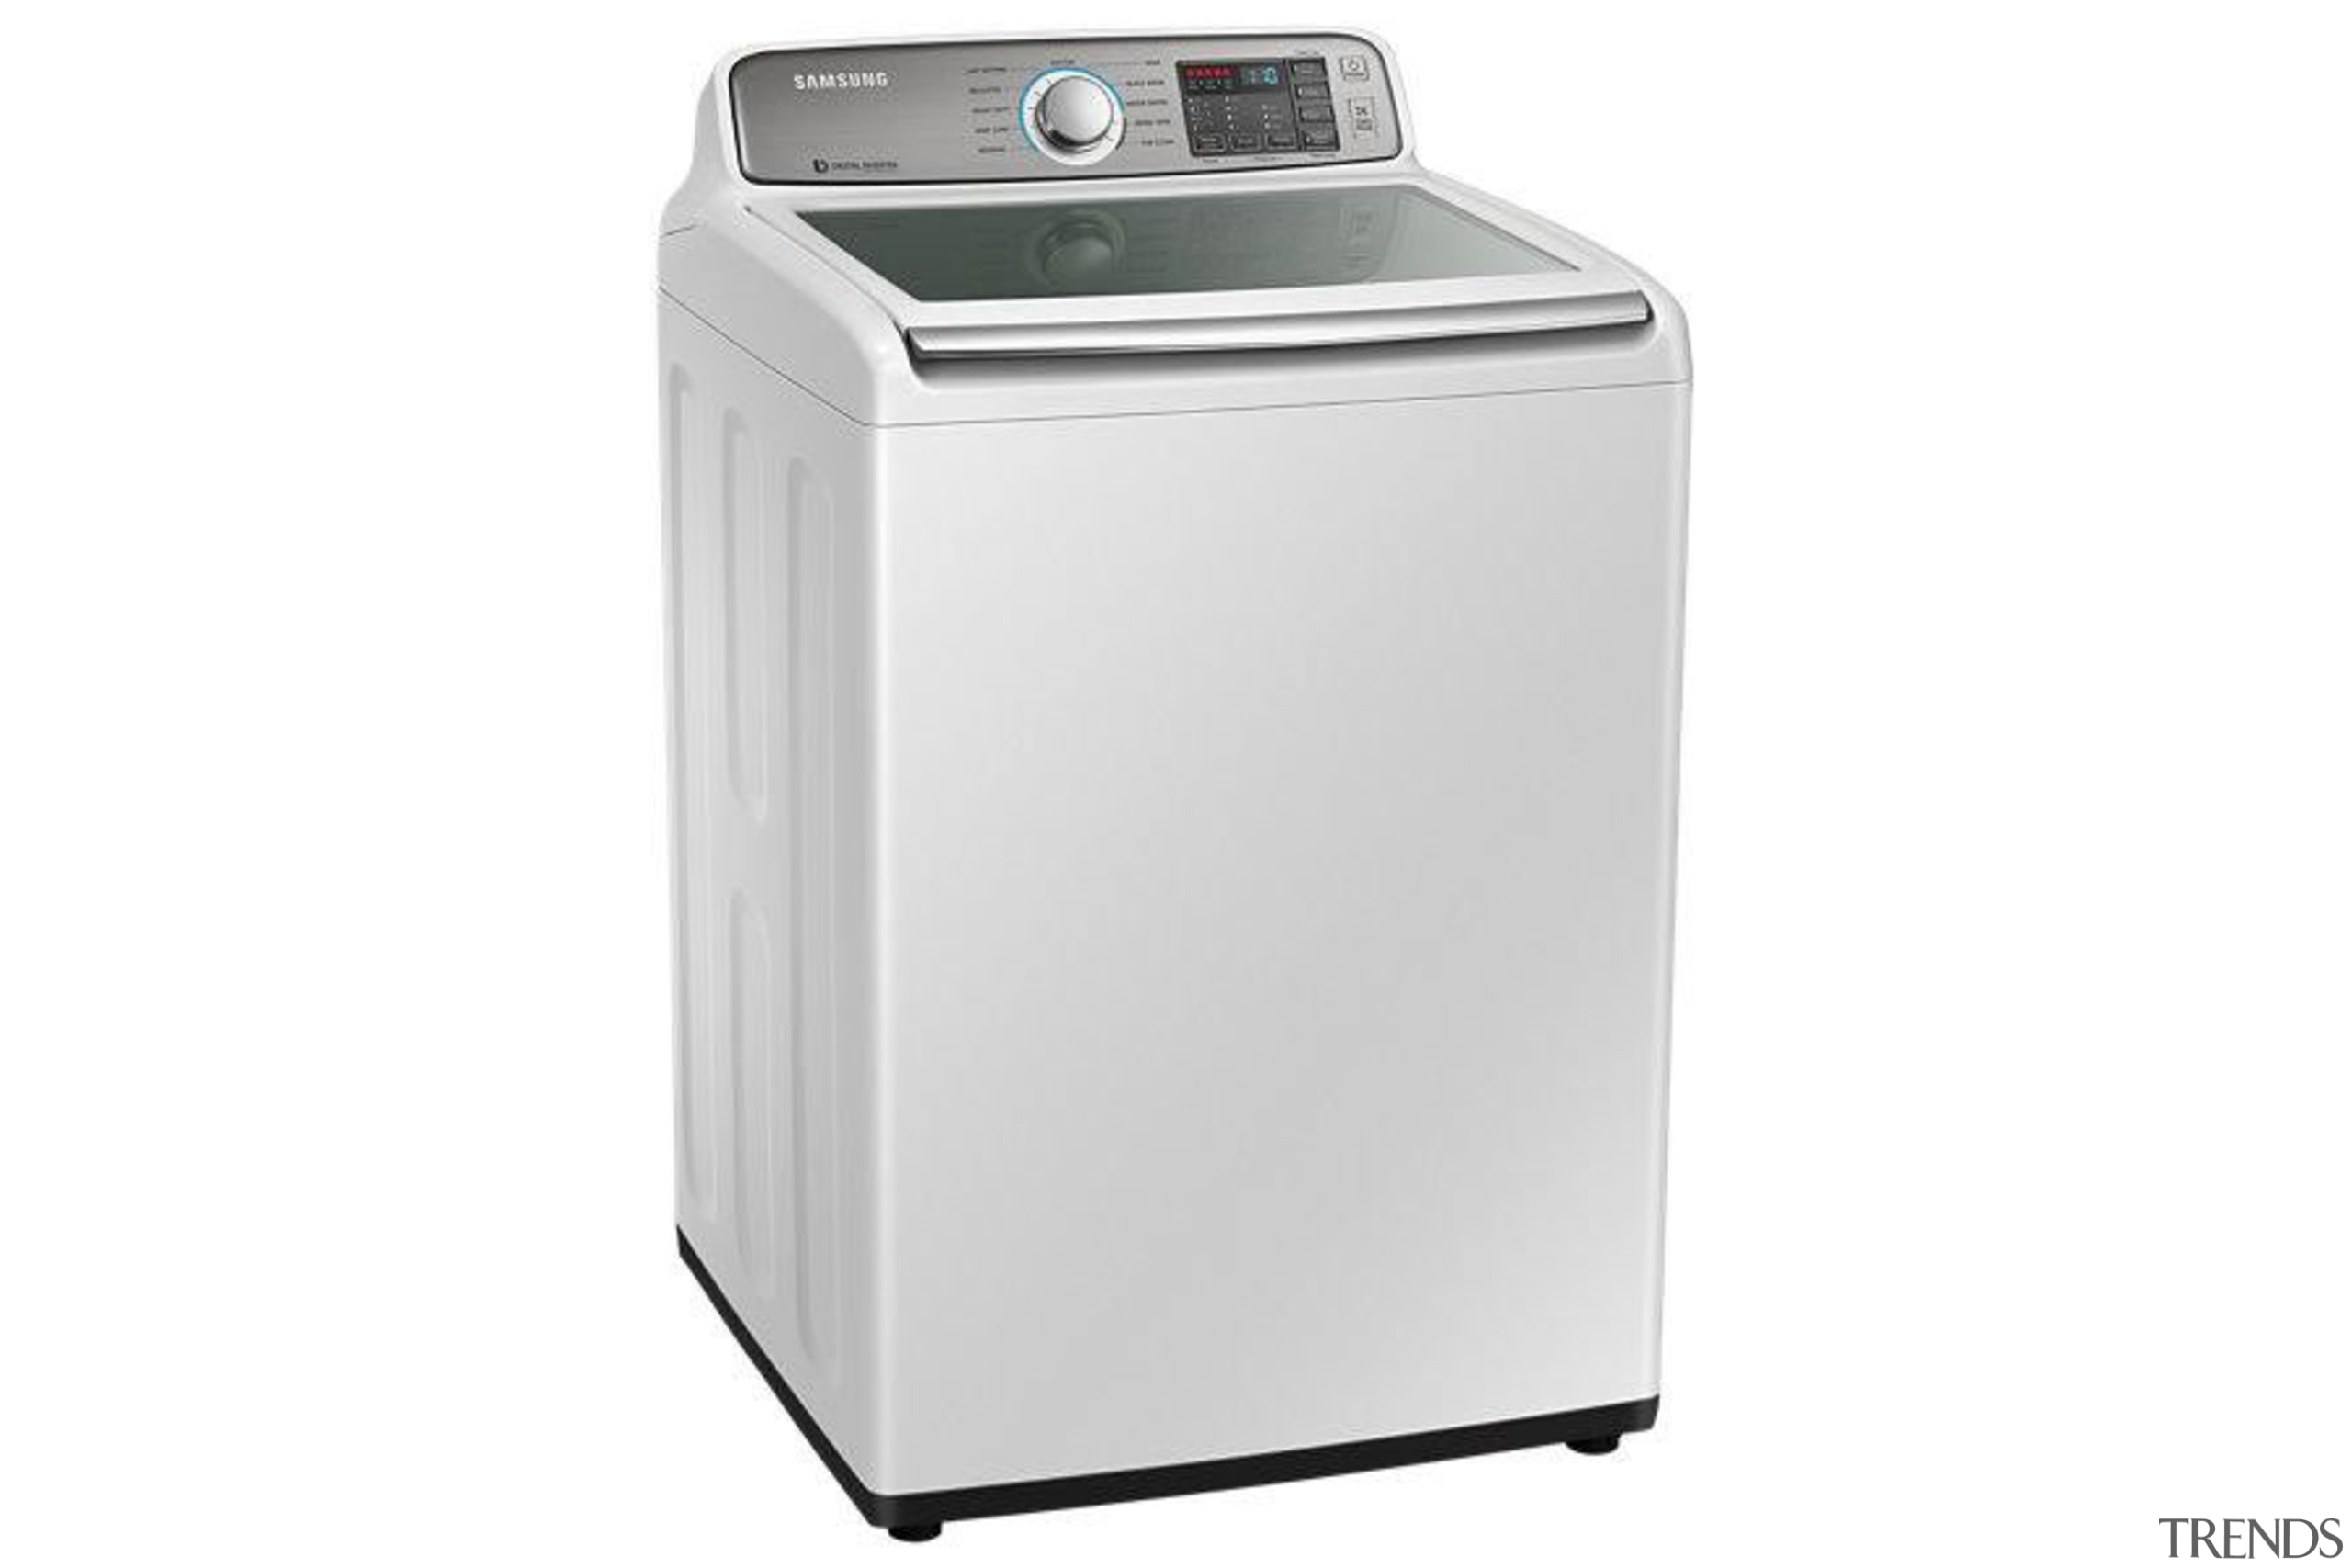 Laundry-Top loader WA10H7200GWA large 10kg capacity means you home appliance, major appliance, product, product design, washing machine, white